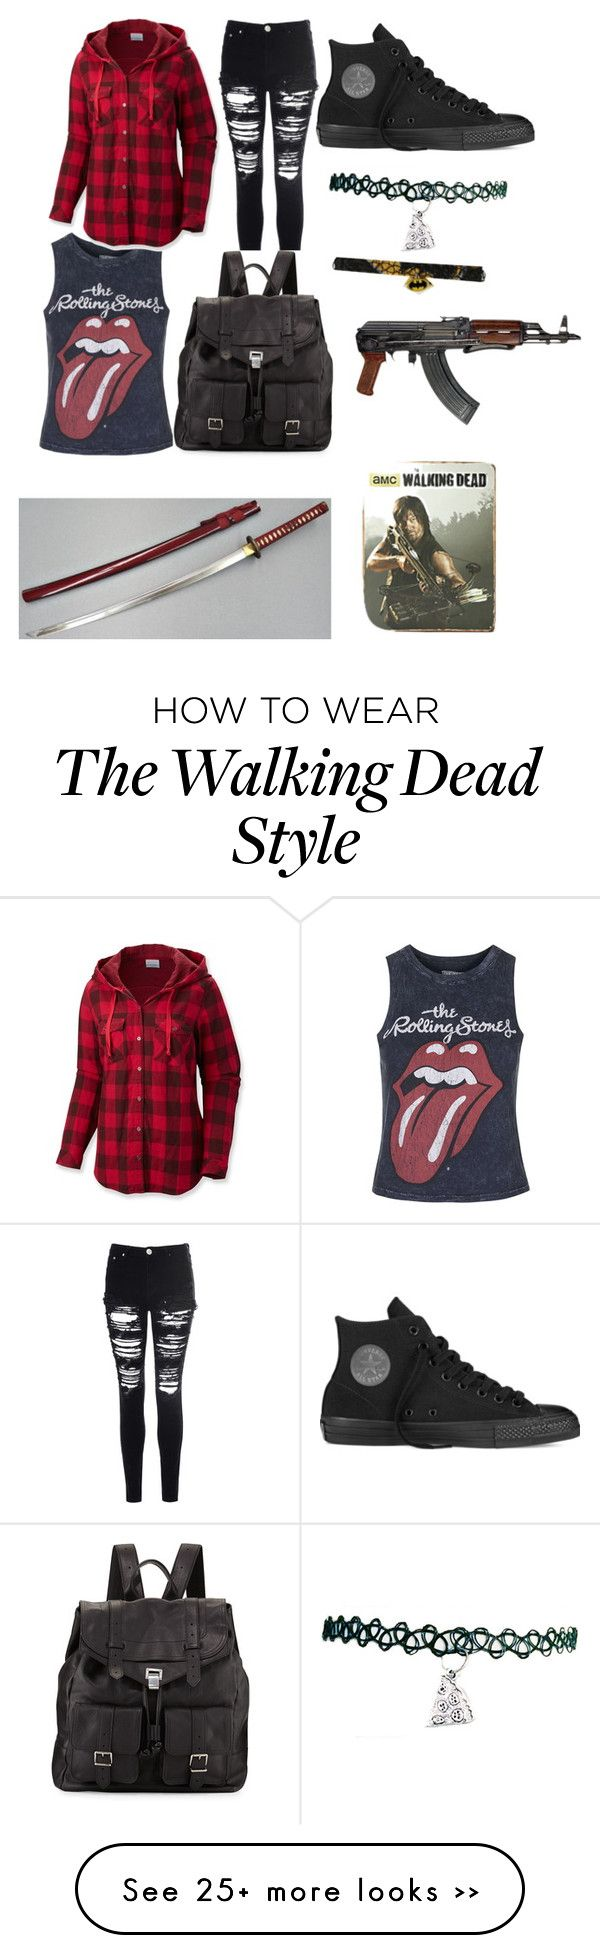 """The walking dead character outfit #1 Tara"" by purplepandaprincess07 on Polyvore featuring Topshop, Columbia, Glamorous, Converse and Proenza Schouler"